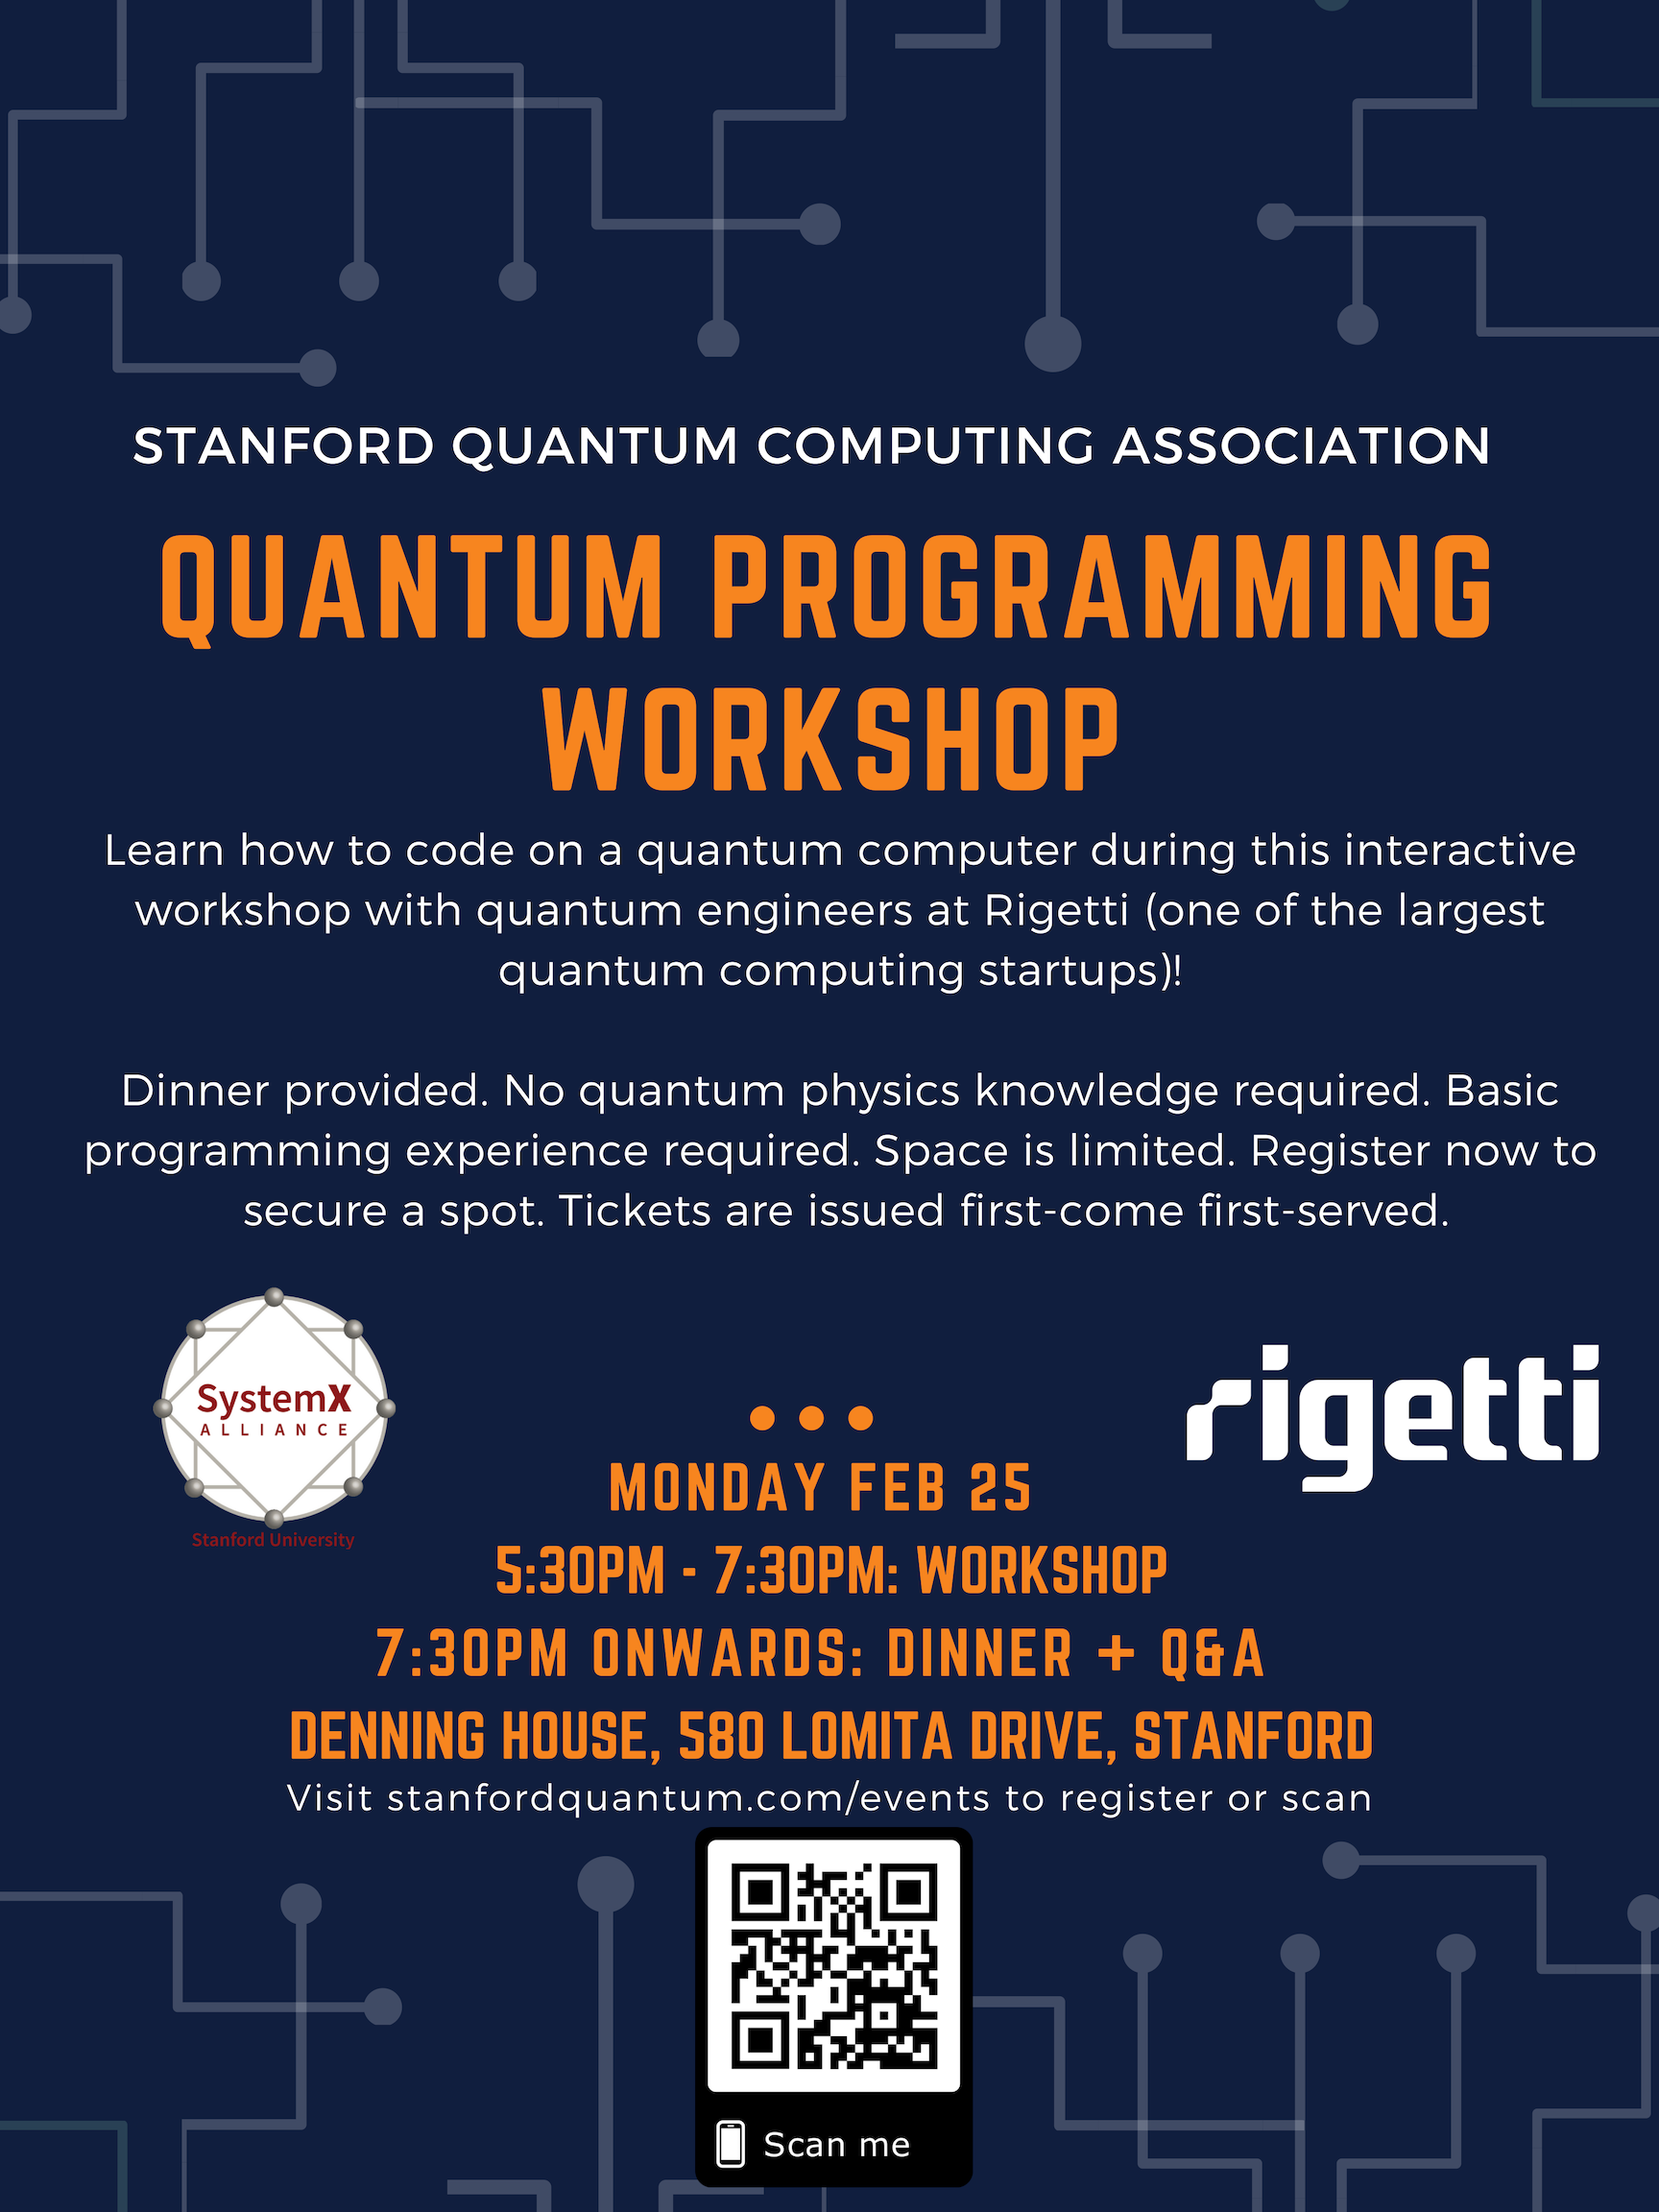 Newsletter -- Monday February 18 2019 — Stanford Quantum